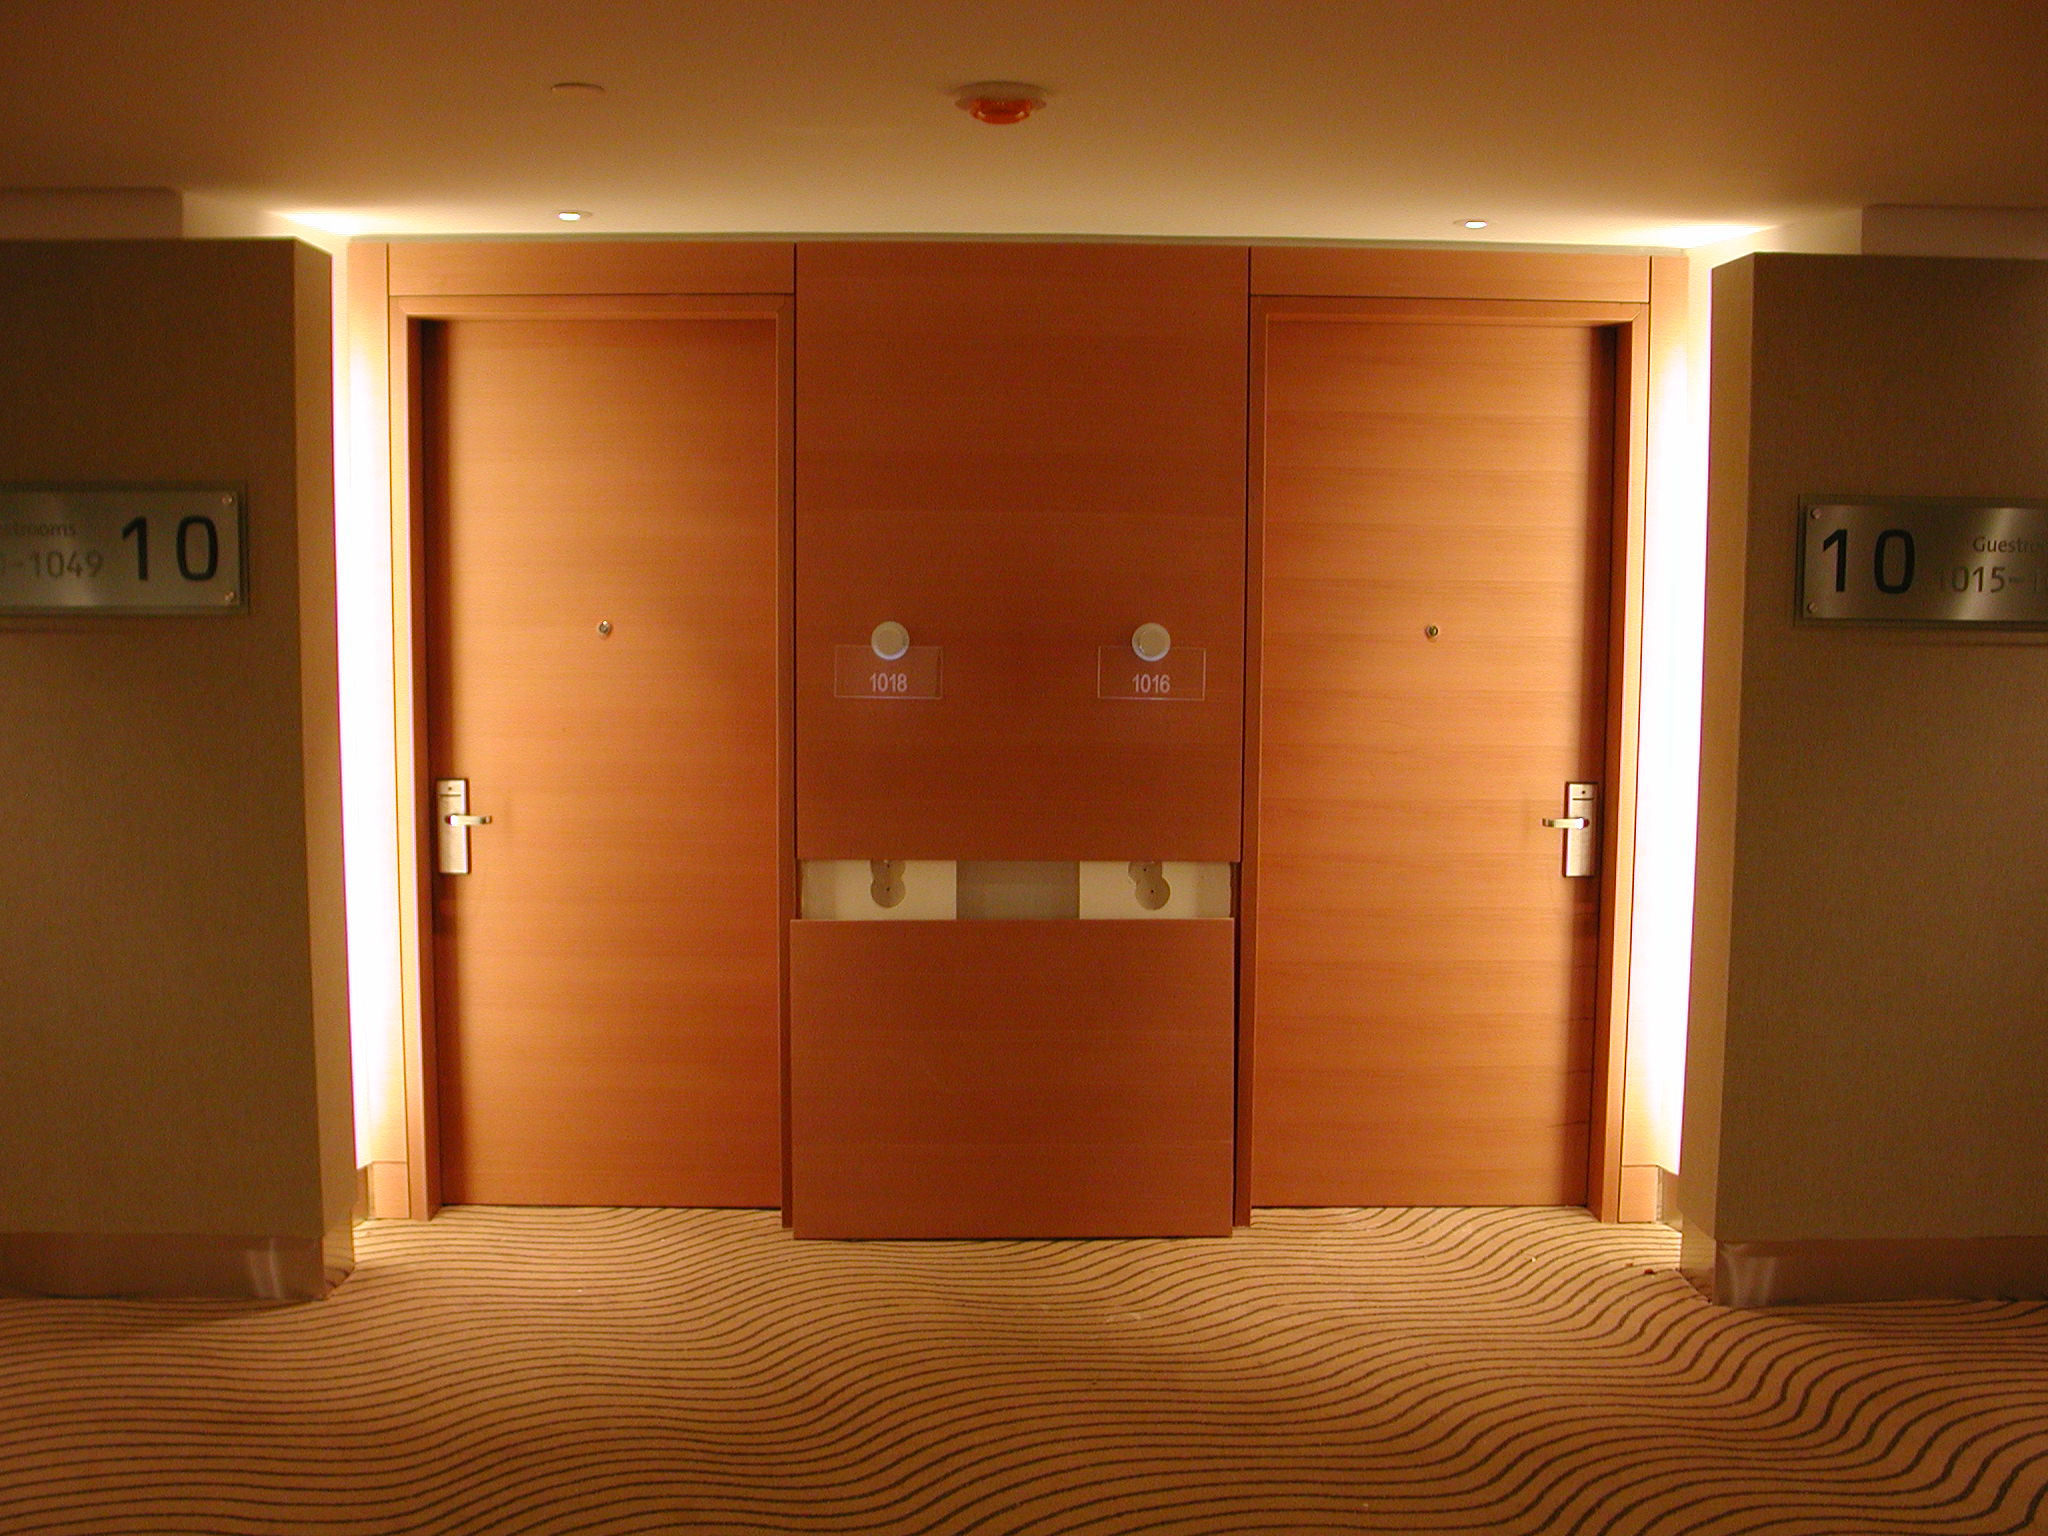 Fire rated wooden doors in UAE can be installed as an entry way in a hotel